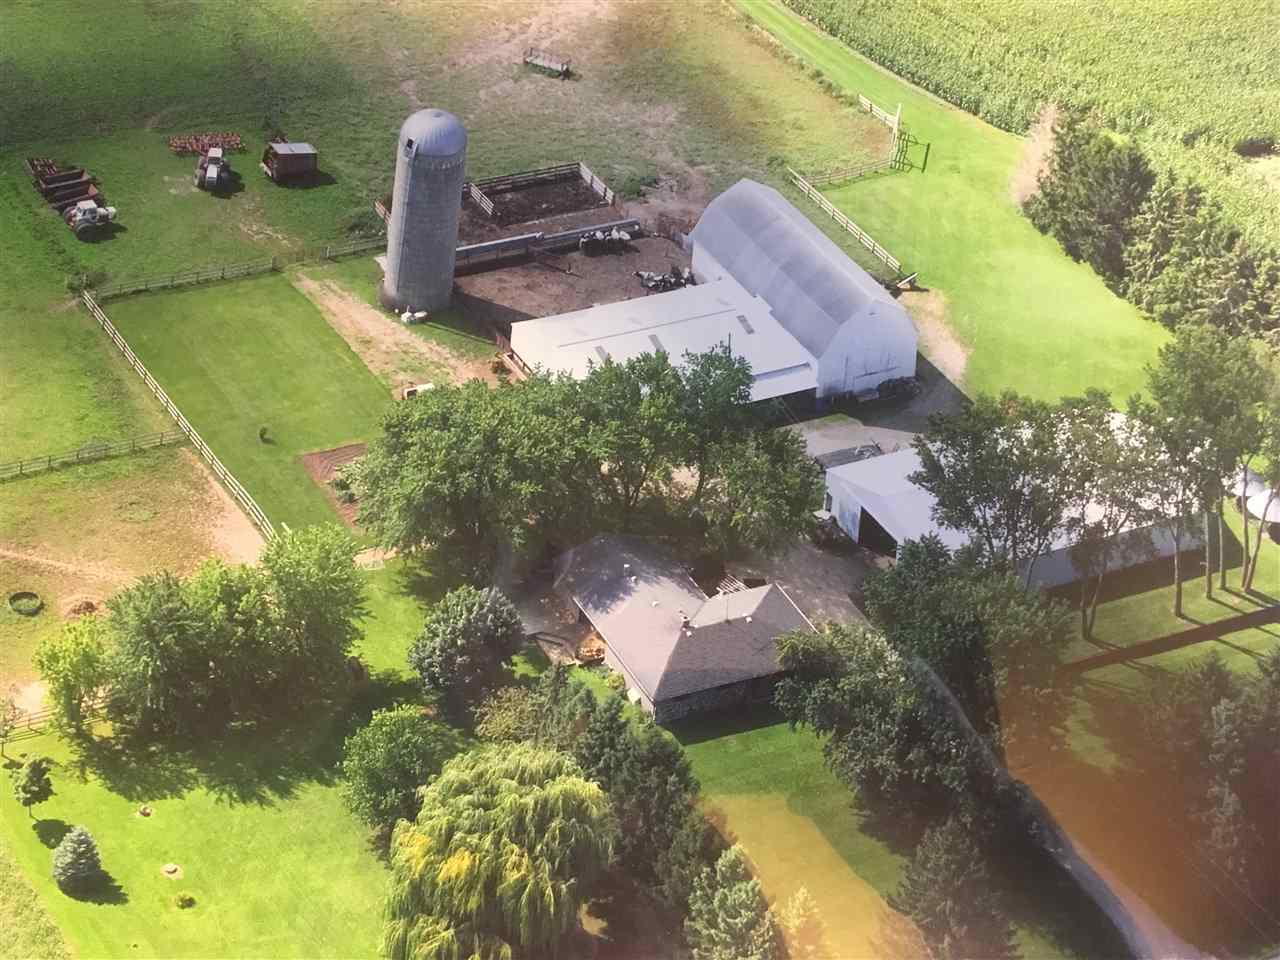 A rare find, a turn key apr. 70 acre farm with a 36x76' barn, a 50x70' addition, a 55x90' pole building. Currently set for beef and horses but could be easily converted. Also, a beautifully redone 3 bdrm ranch house with a lower level Family Room plus a first floor breezeway with a pellet fireplace insert. The furnace is a dual heat source that heats with wood as well as fuel oil and will shift automatically if it runs out of wood. Add a wrap-around Deck with a panoramic view plus a fenced in riding area and you will soon fall in love with your own piece of paradise. See it soon!